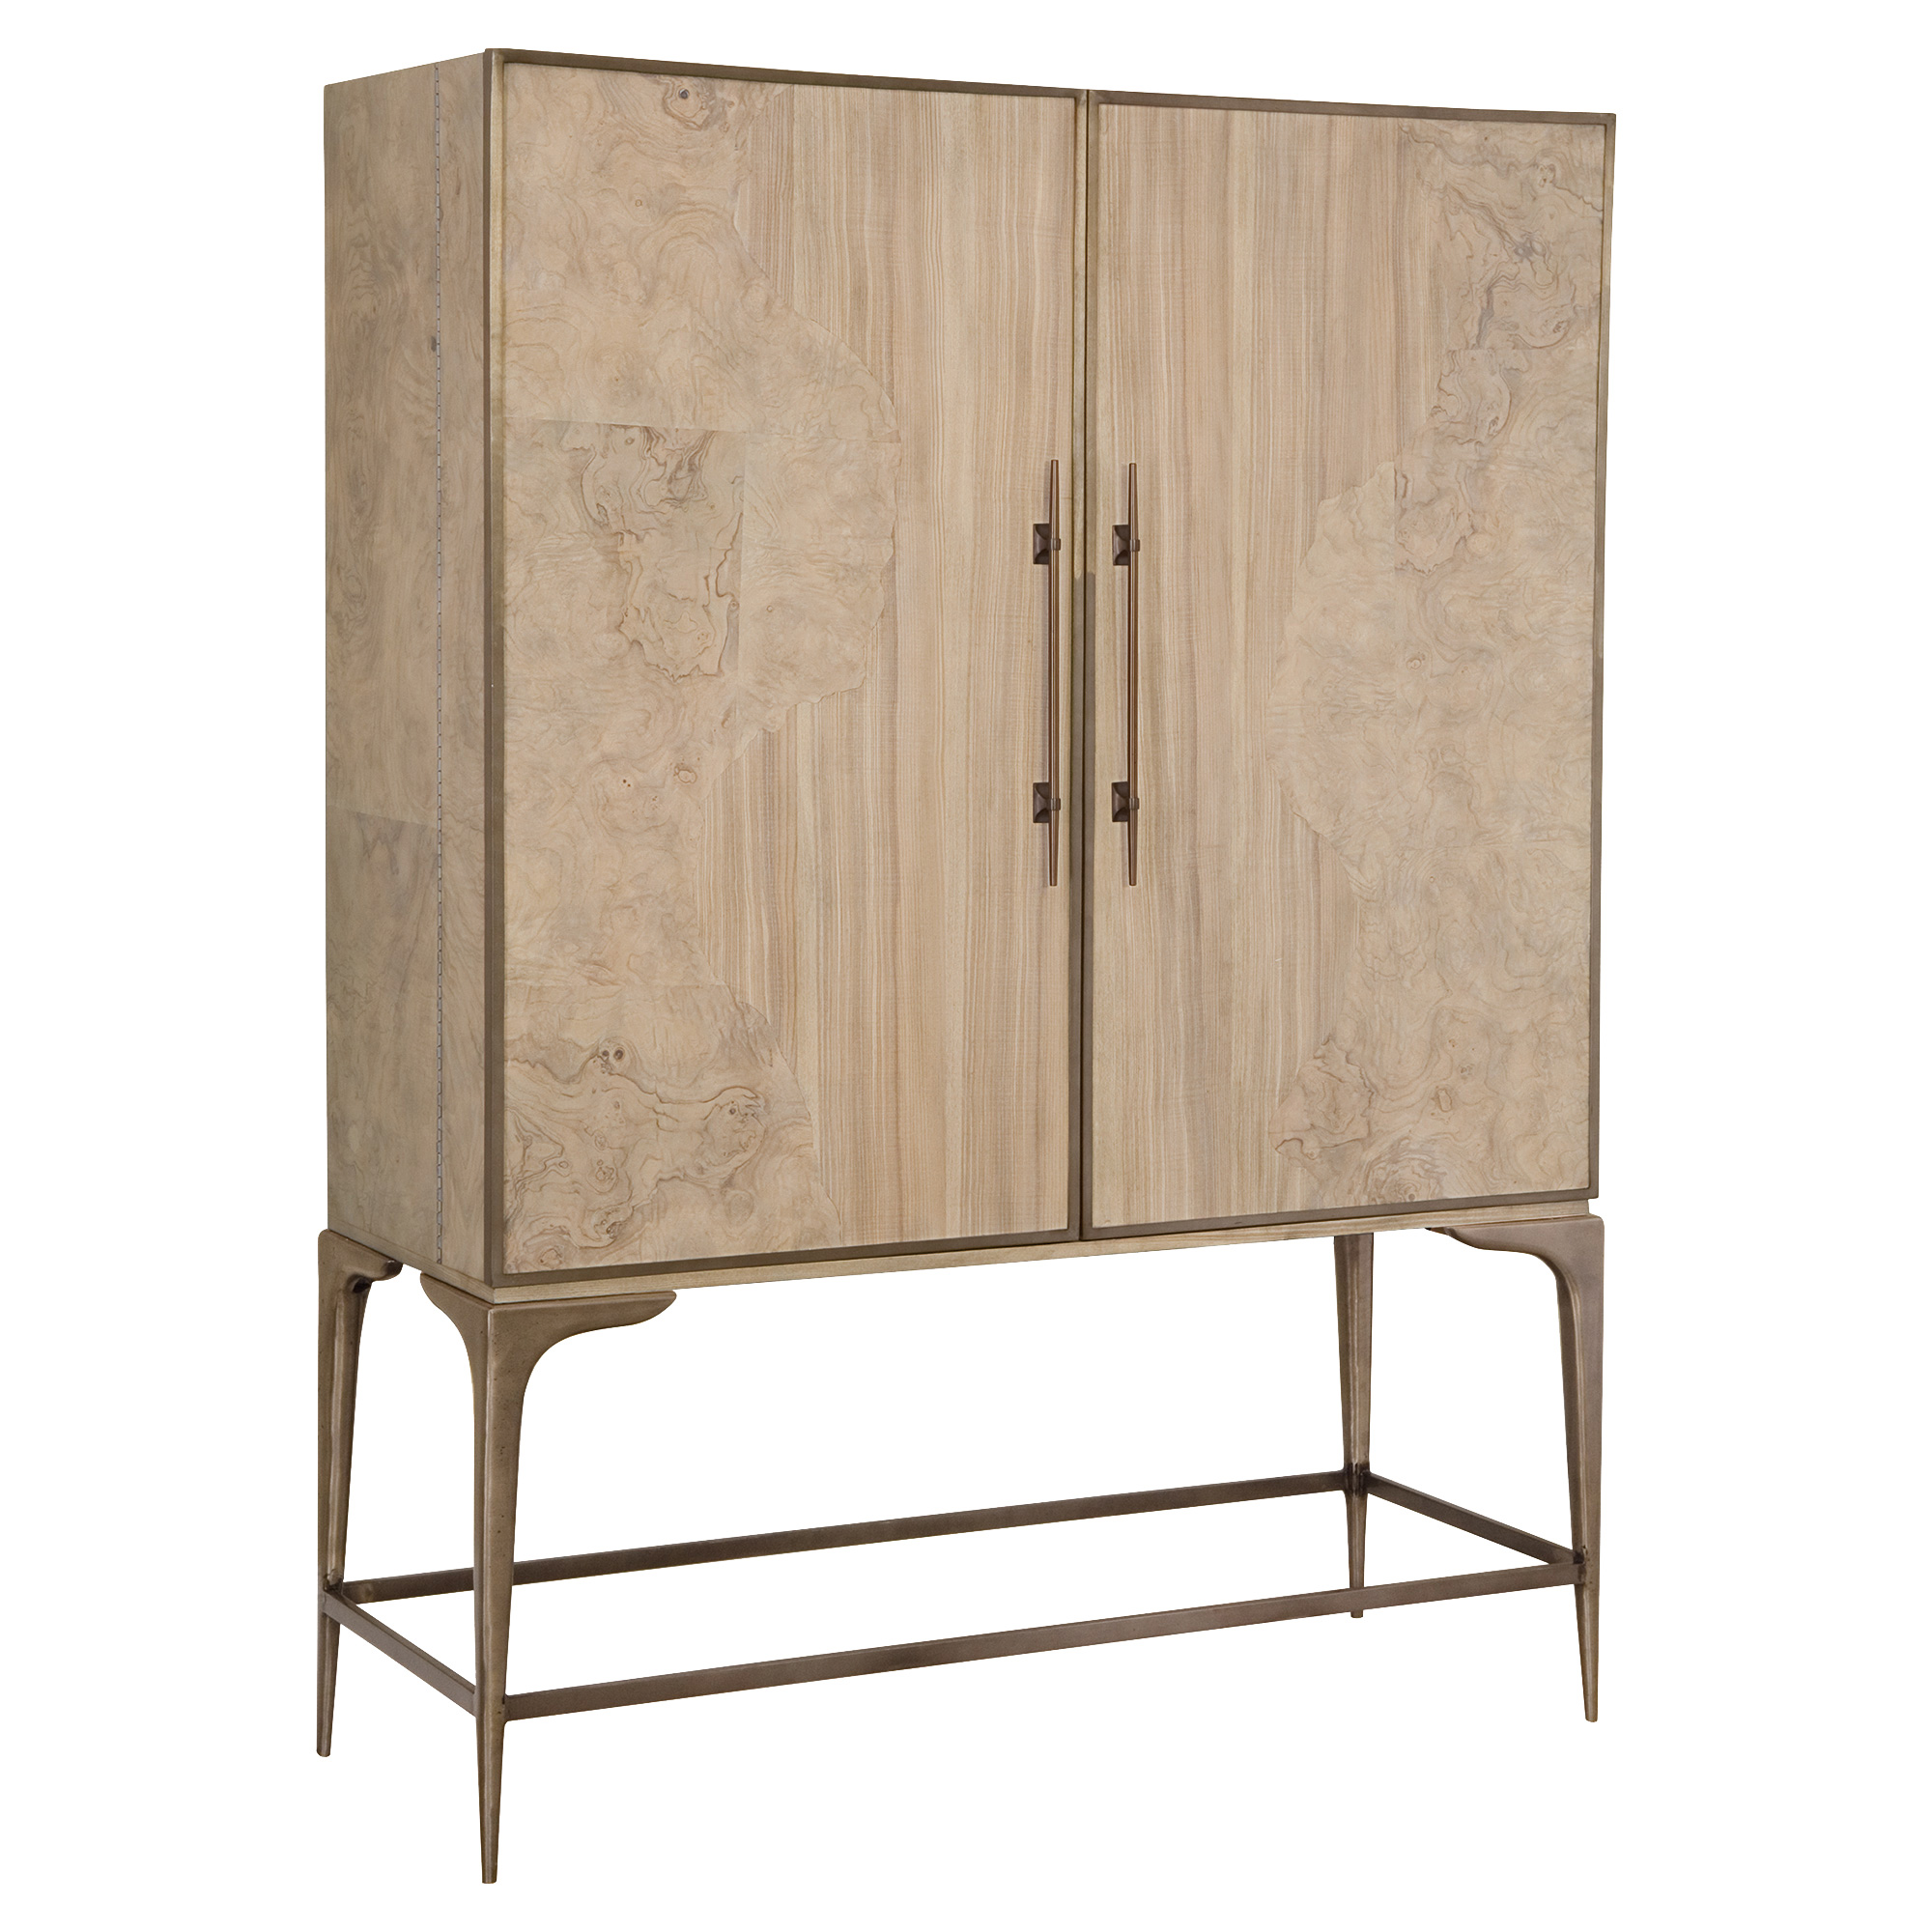 mid black and italian wood f at cabinet midcentury storage furniture only case mirrors cabinets bar pieces century with for left modern org glass sale id